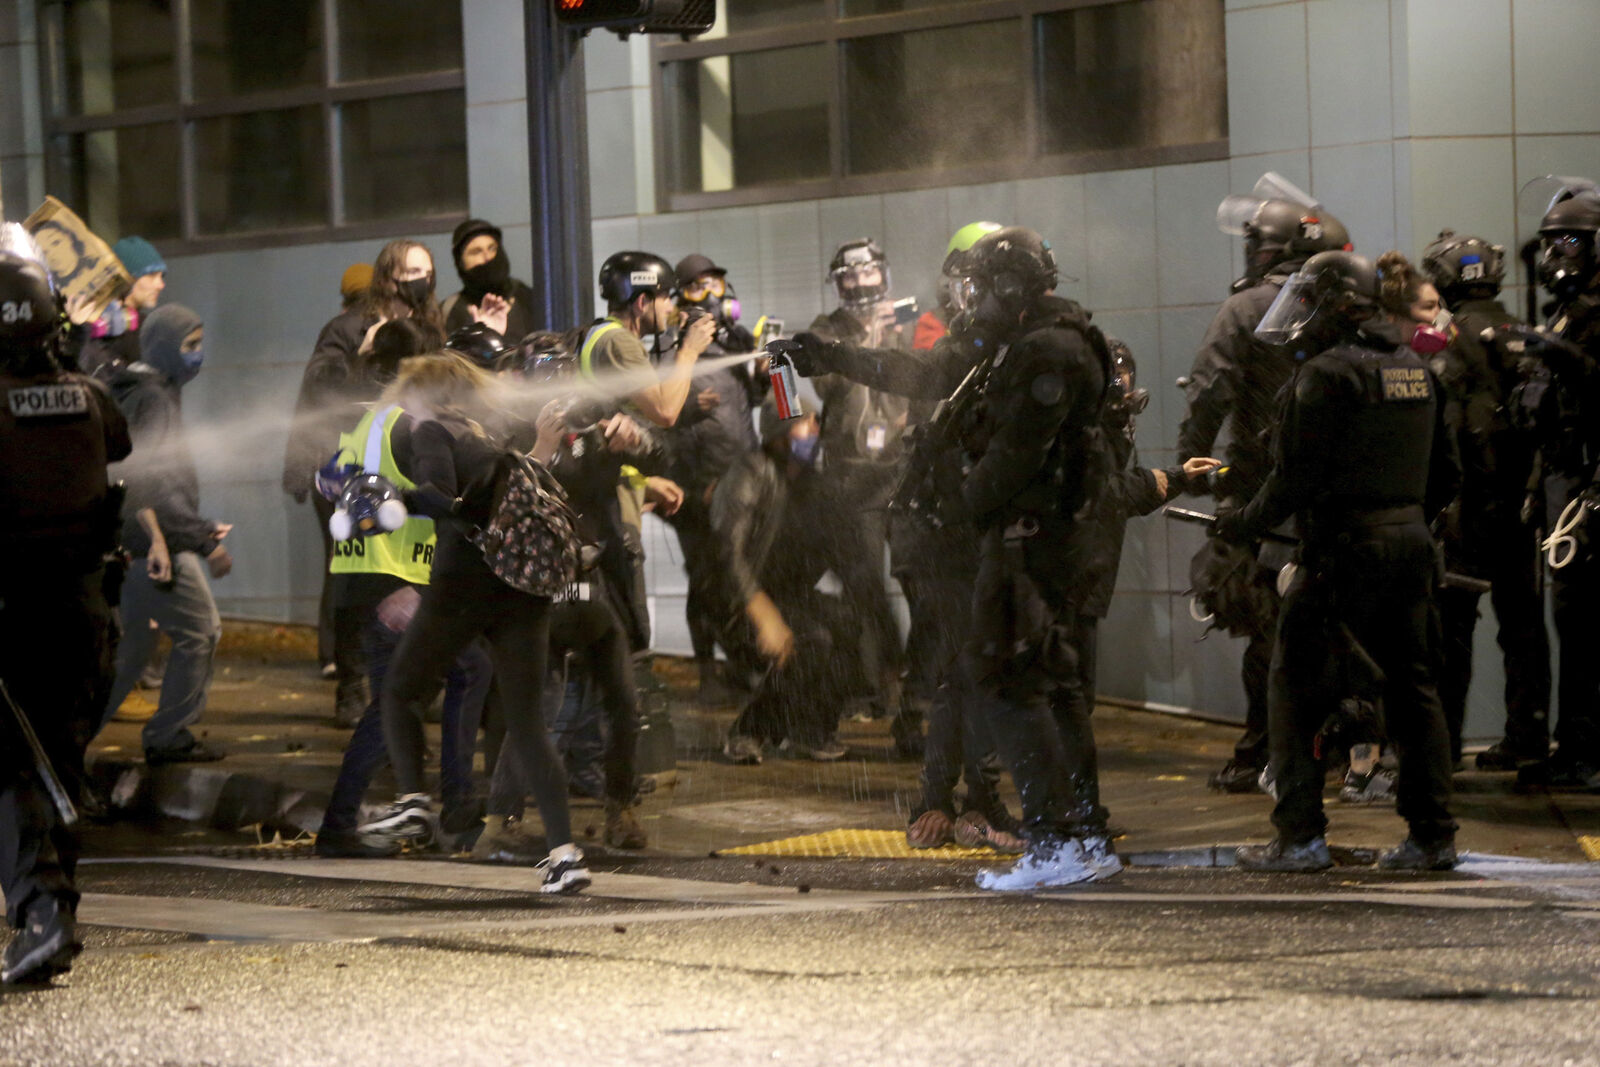 Protesters demanding the end of police violence against Black people are sprayed by police during a demonstration in Portland, Ore., on Wednesday, Sept. 23, 2020. (Mark Graves/The Oregonian via AP)